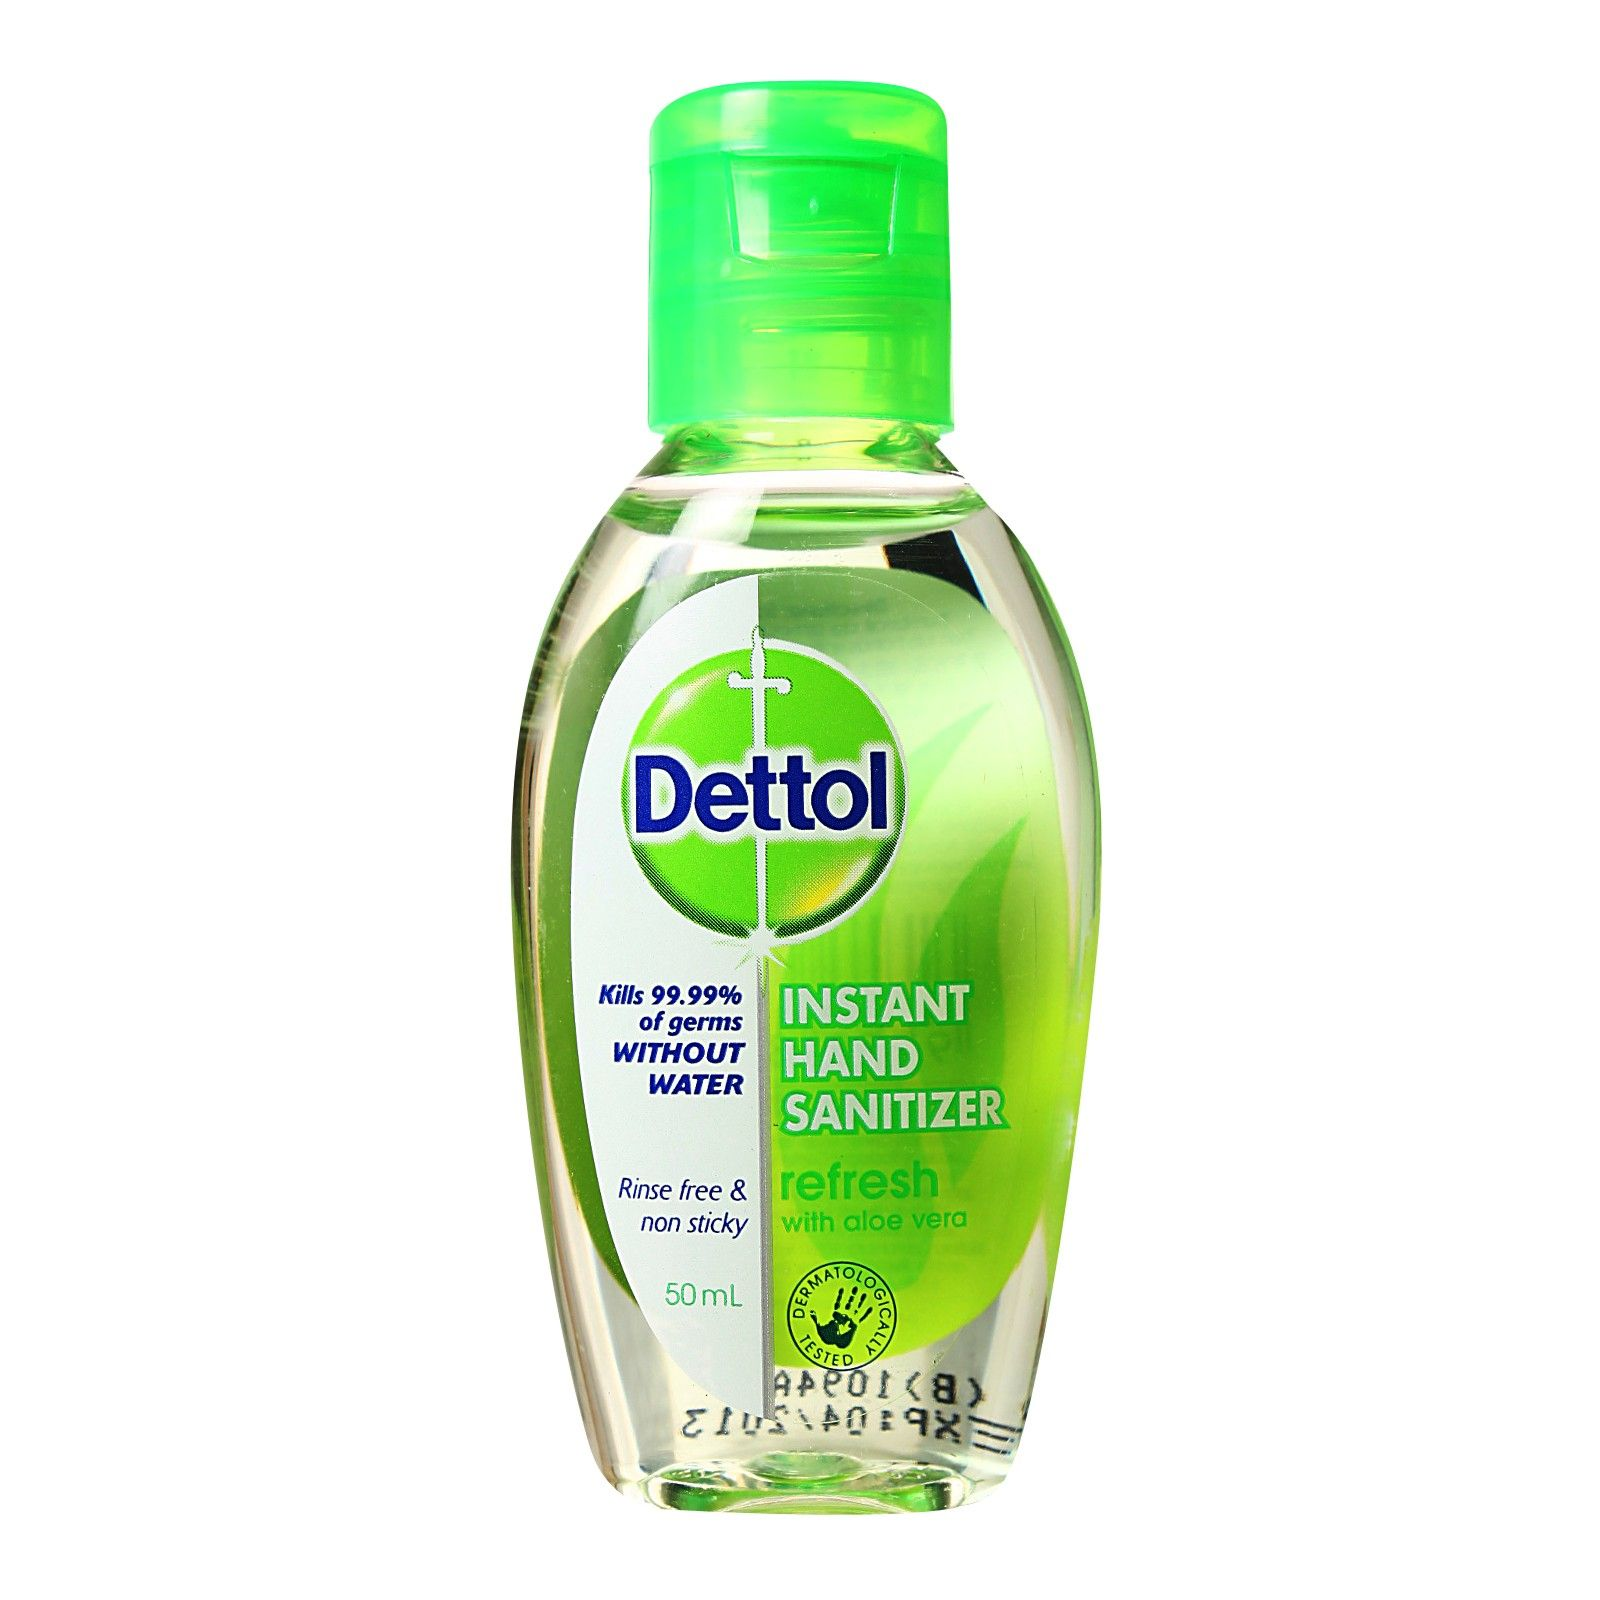 Dettol Hand Sanitizer Review Minyak